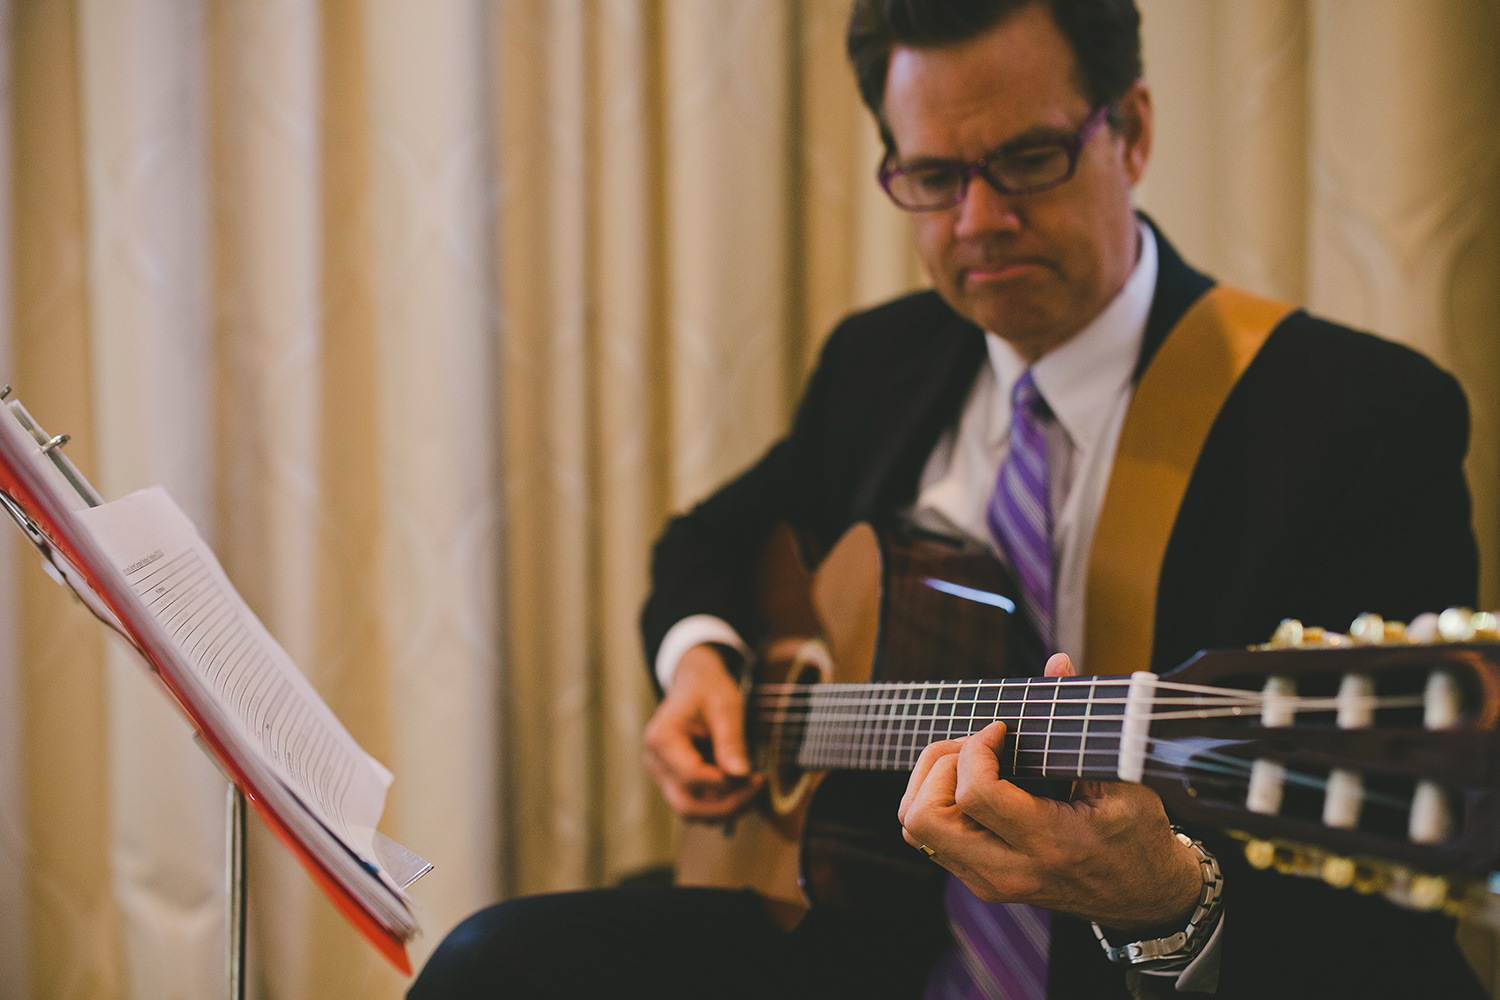 Ceremony musician playing the guitar at a ballroom wedding